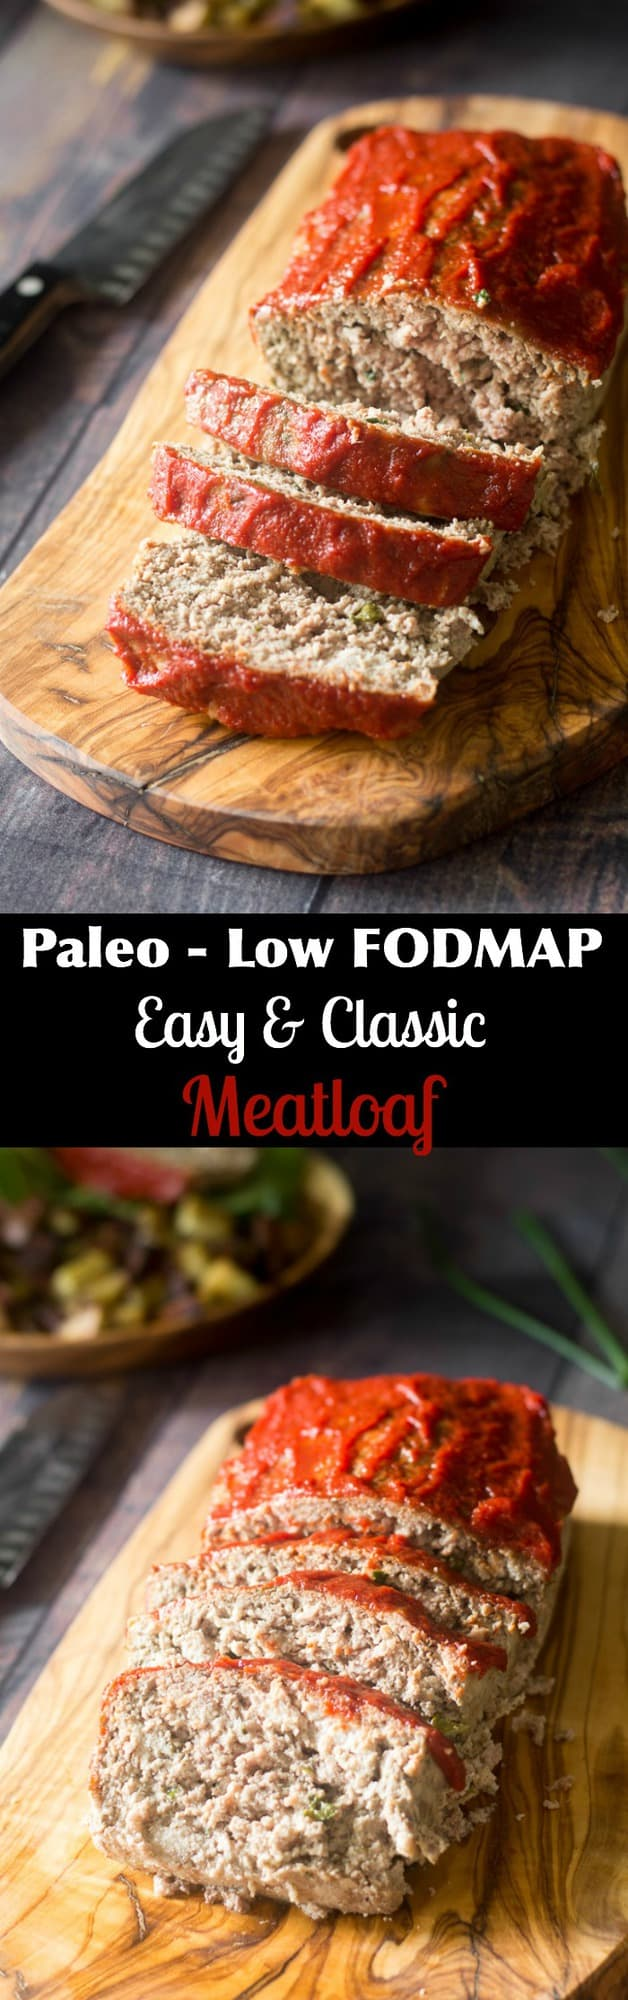 Paleo and Low FODMAP meatloaf that's easy to make and great for picky eaters!  Plenty of flavor with optional maple chipotle glaze